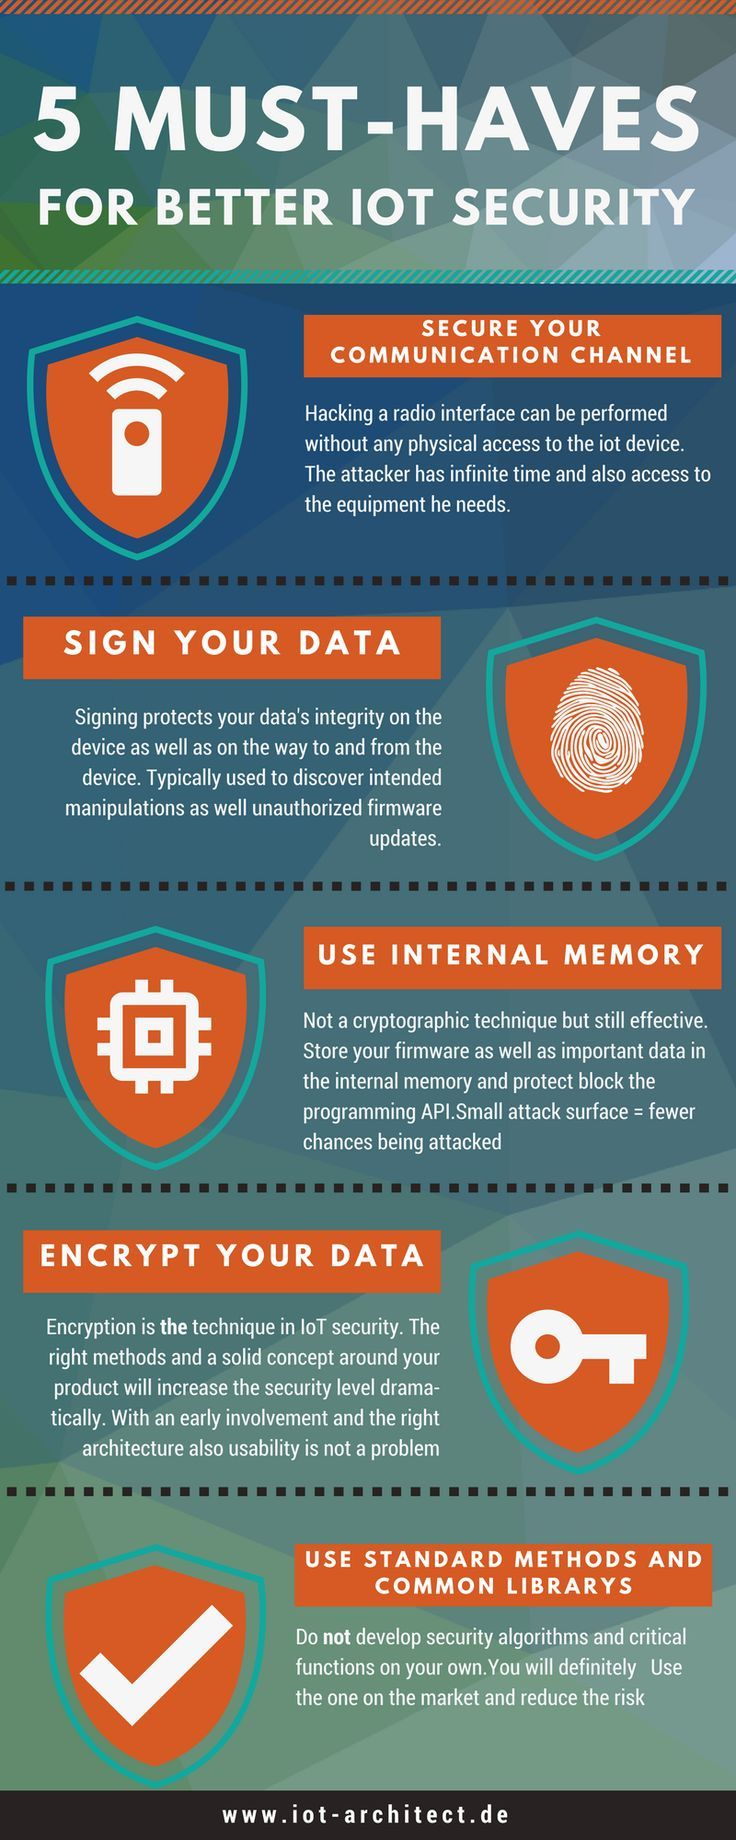 Pin by Michael Fisher on CyberSecurity (With images